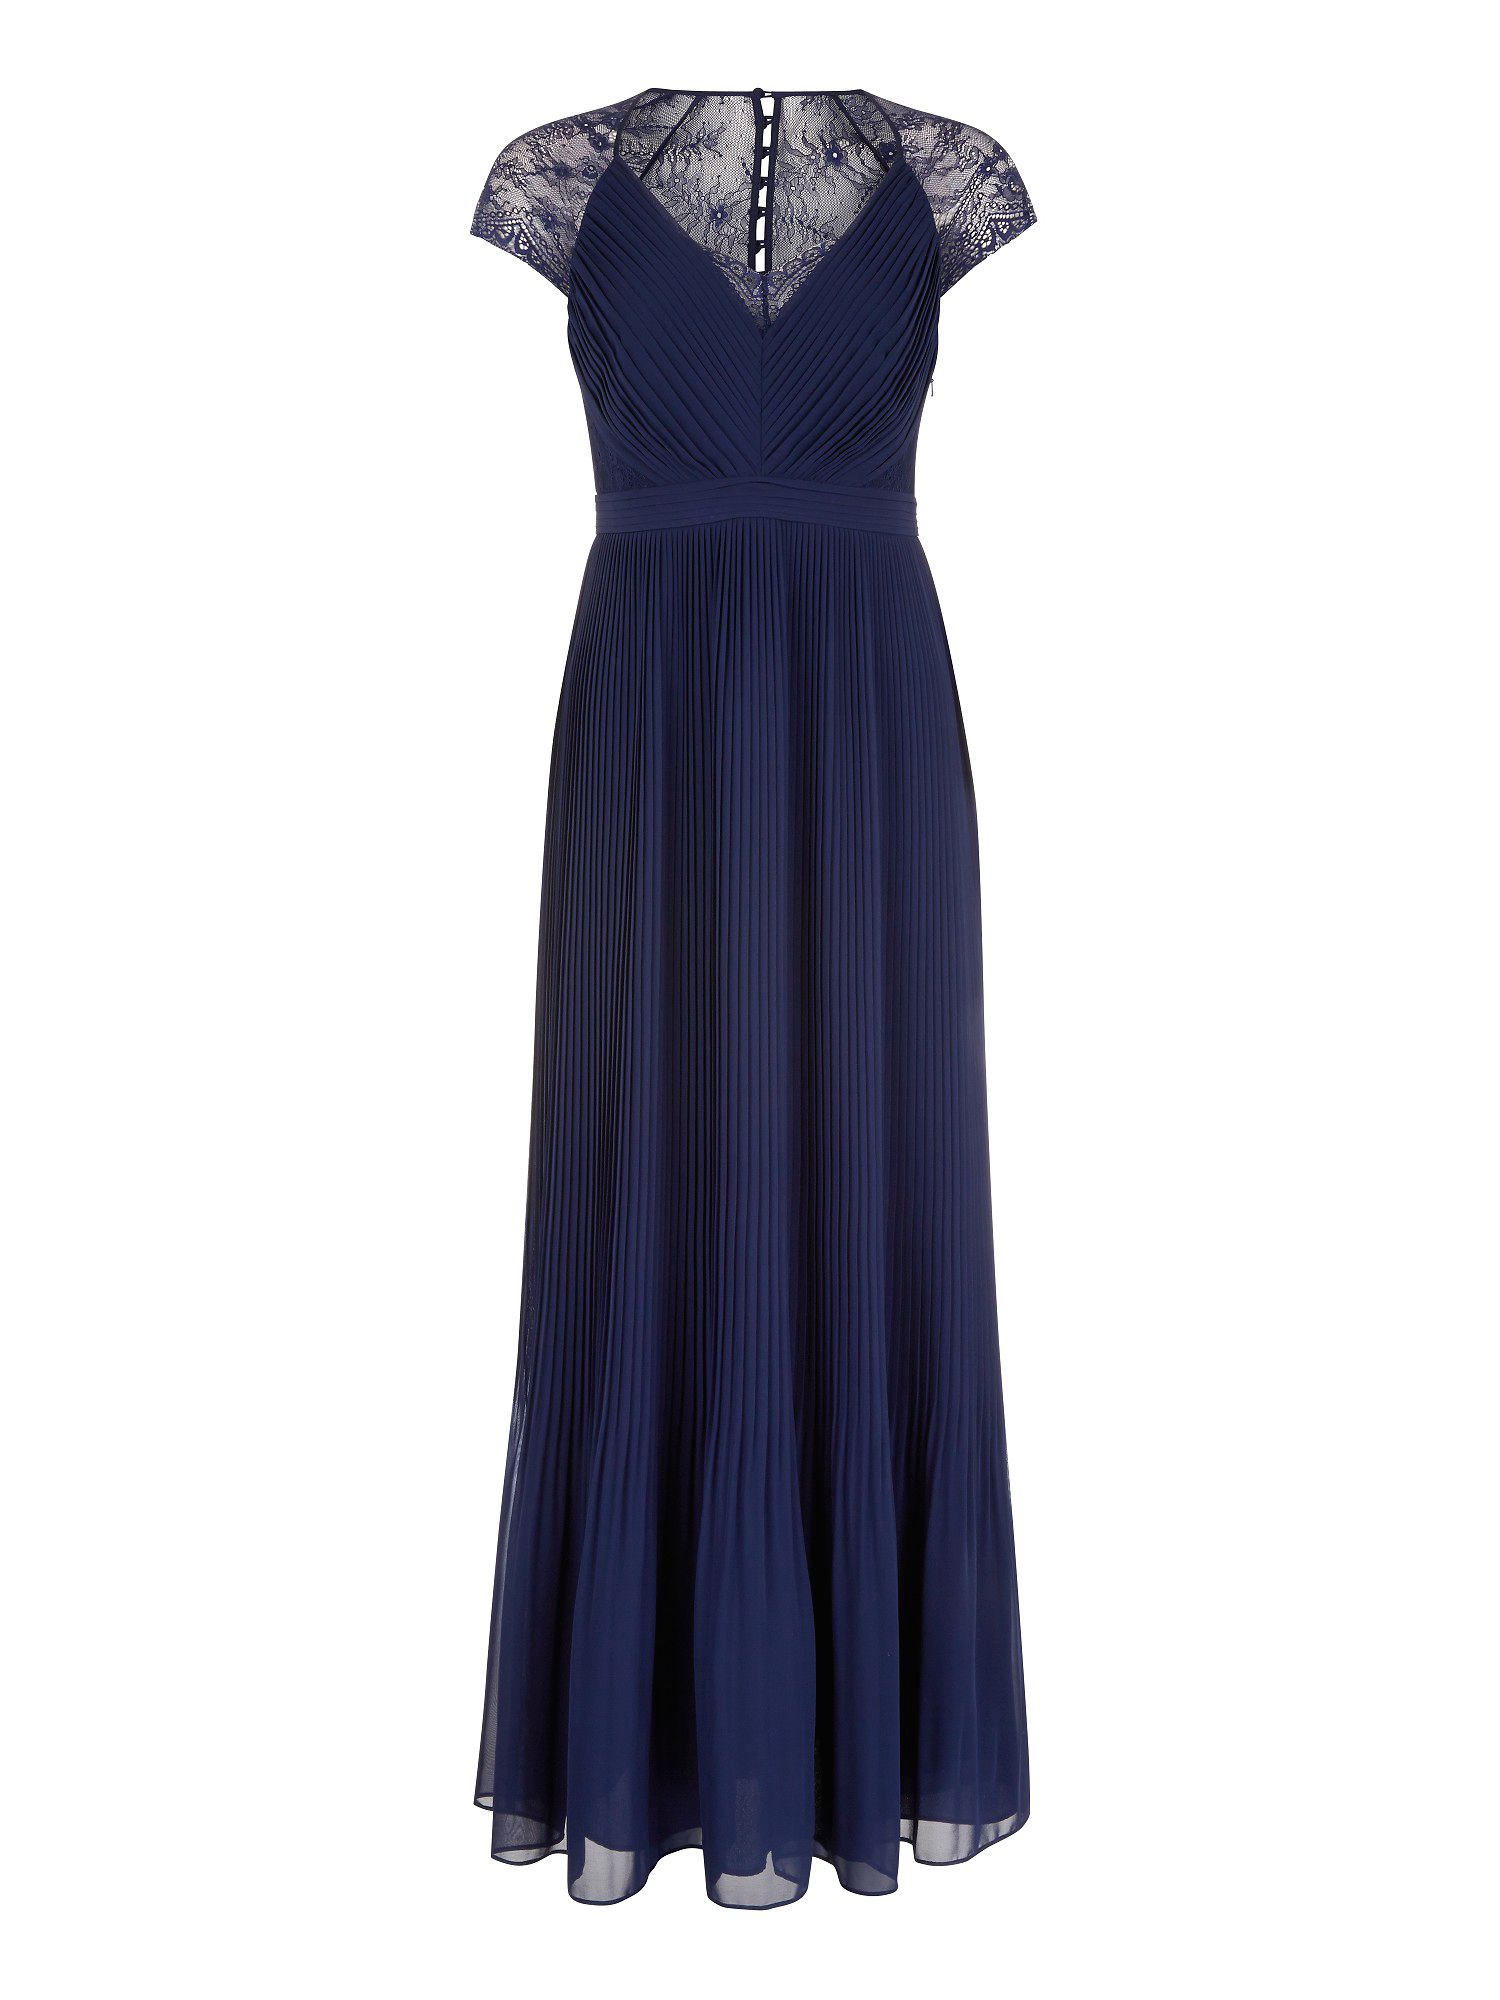 Navy middleton pleat maxi dress